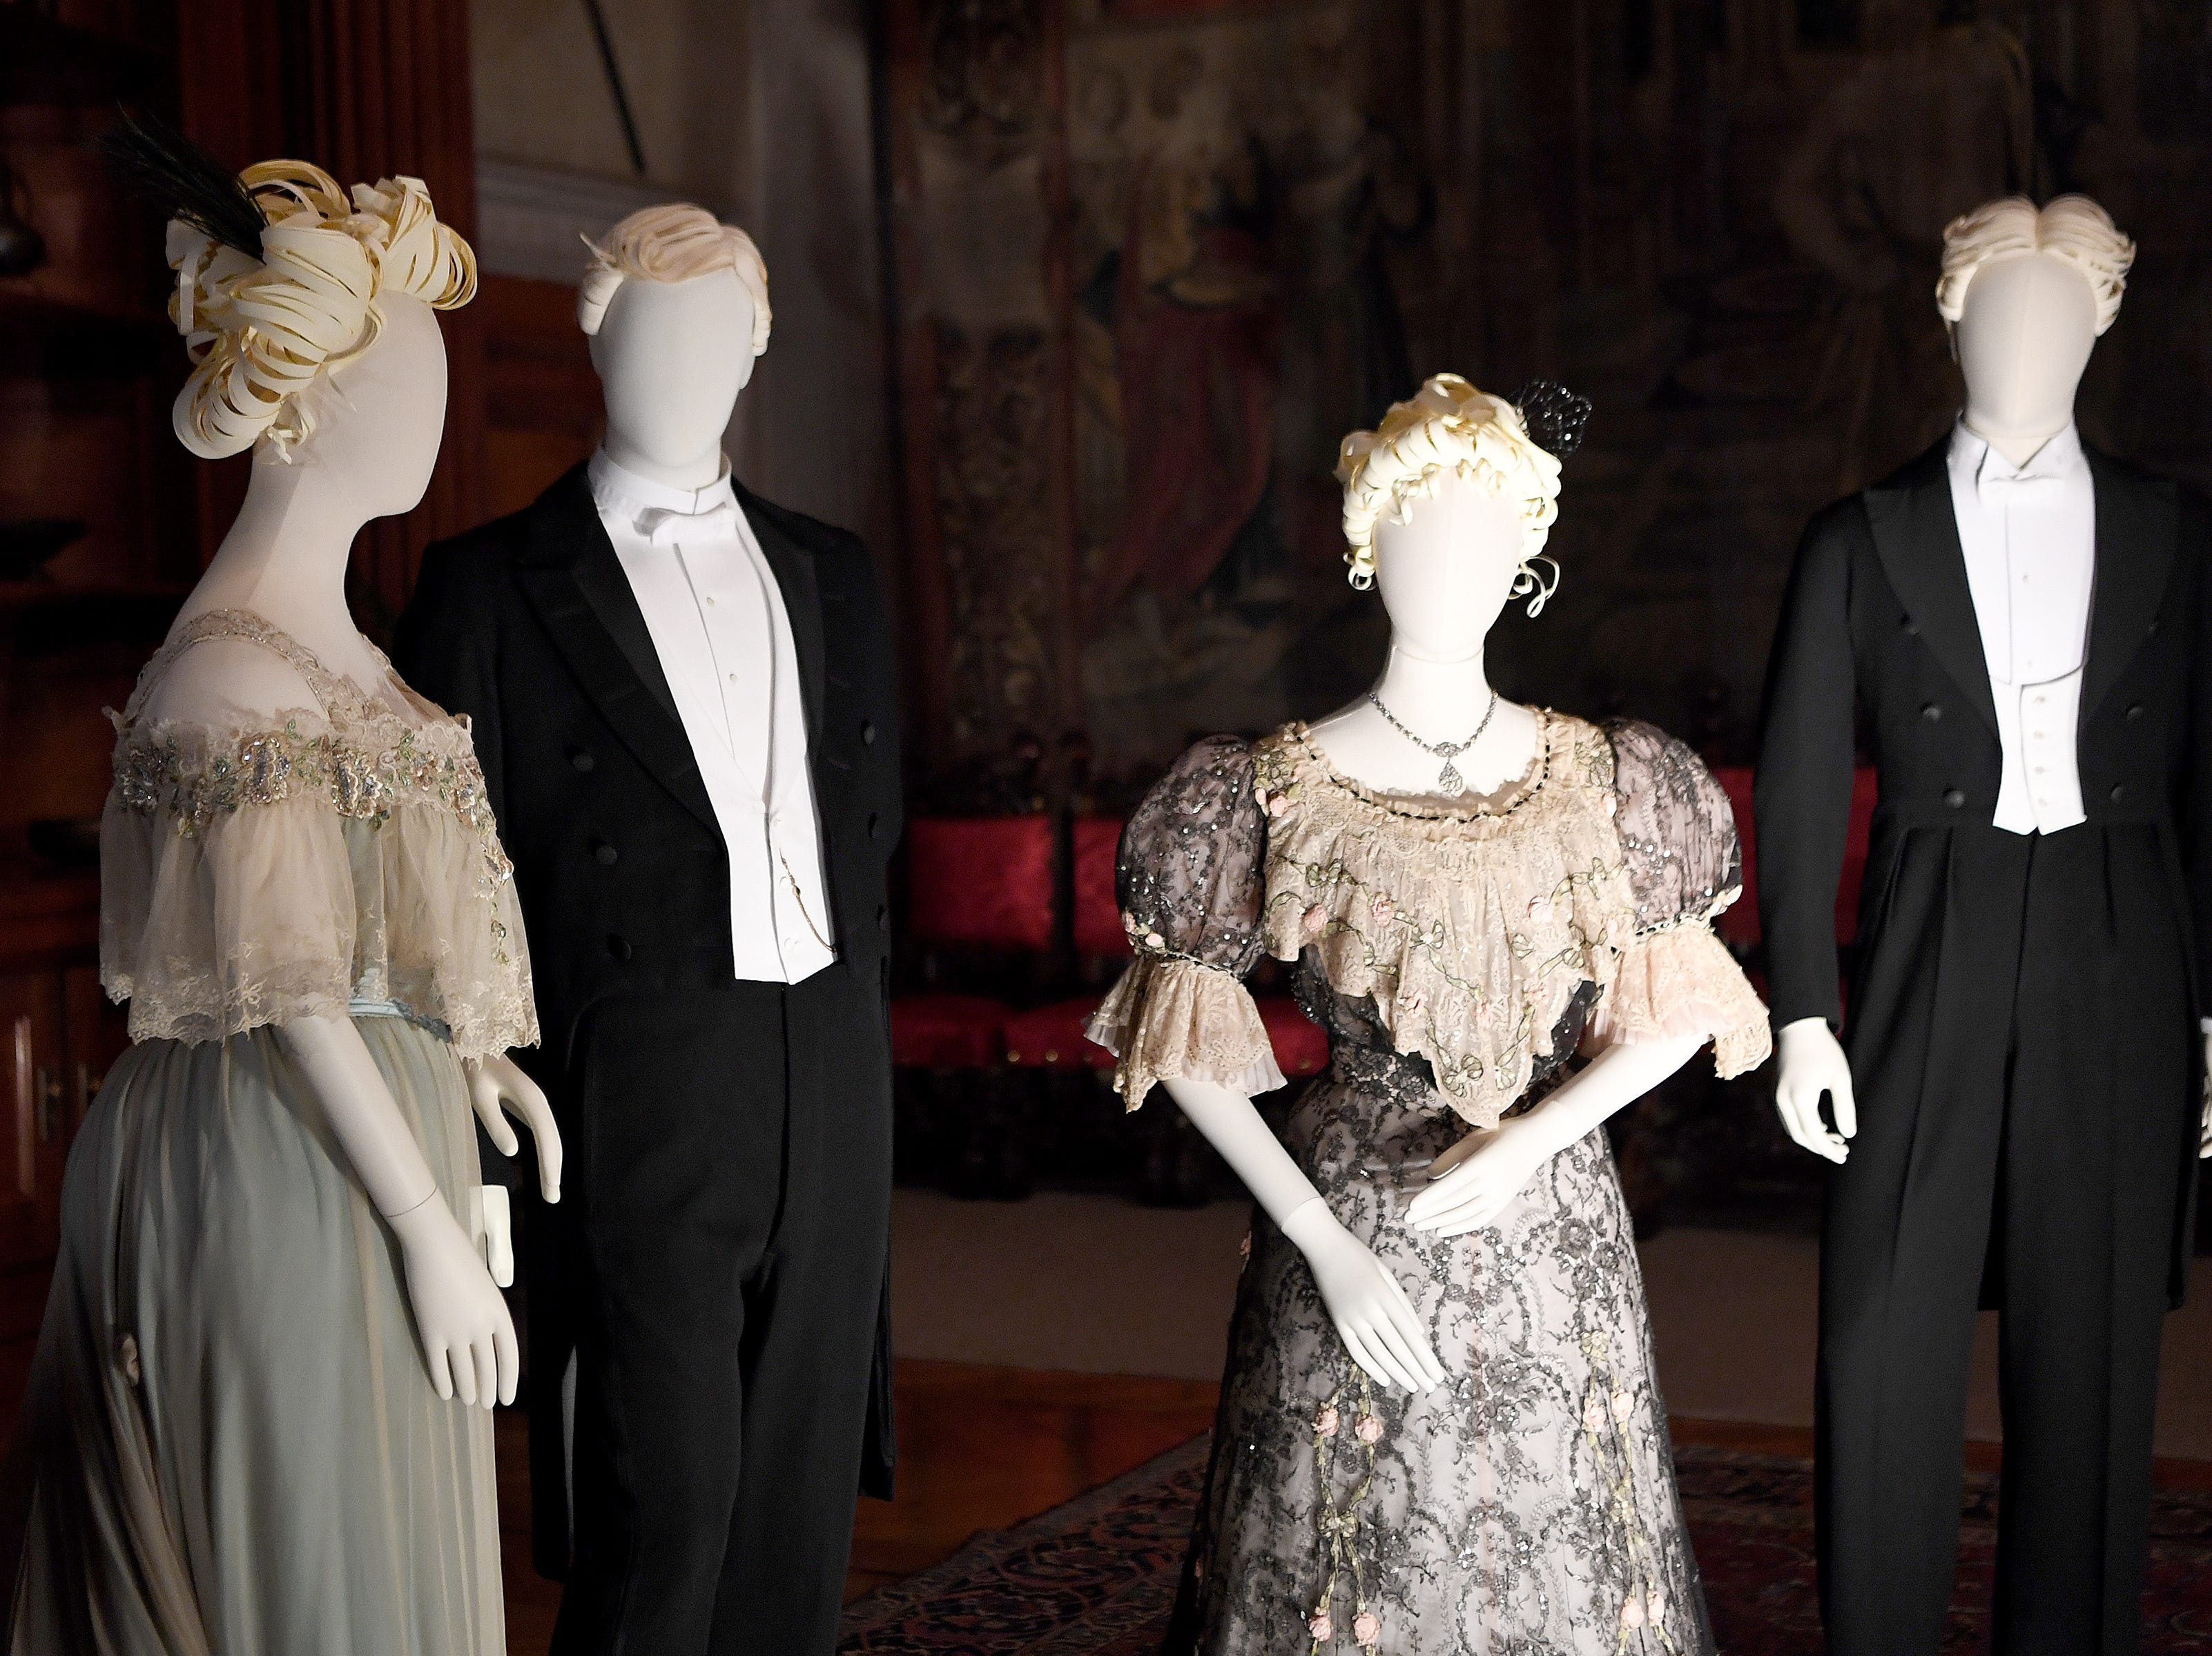 """The Biltmore Estate's new exhibit is """"A Vanderbilt House Party, the Gilded Age,"""" featuring clothing created by John Bright and Cosprop, London from historic photographs of members of the Vanderbilt family and their guests."""